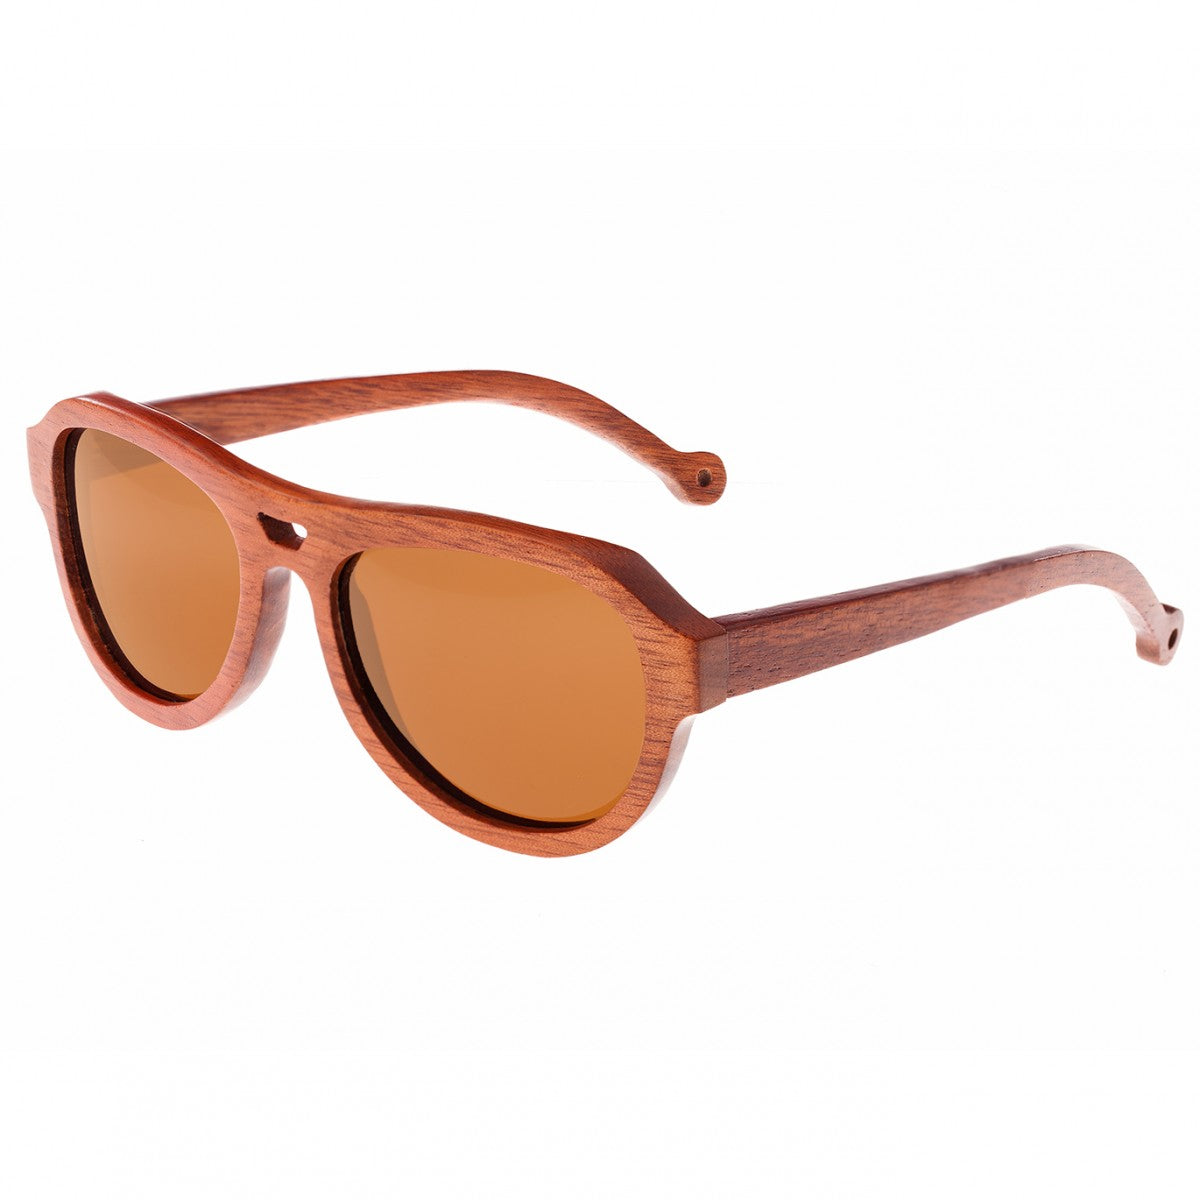 Earth Wood Coronado Polarized Sunglasses - GENT.ONE